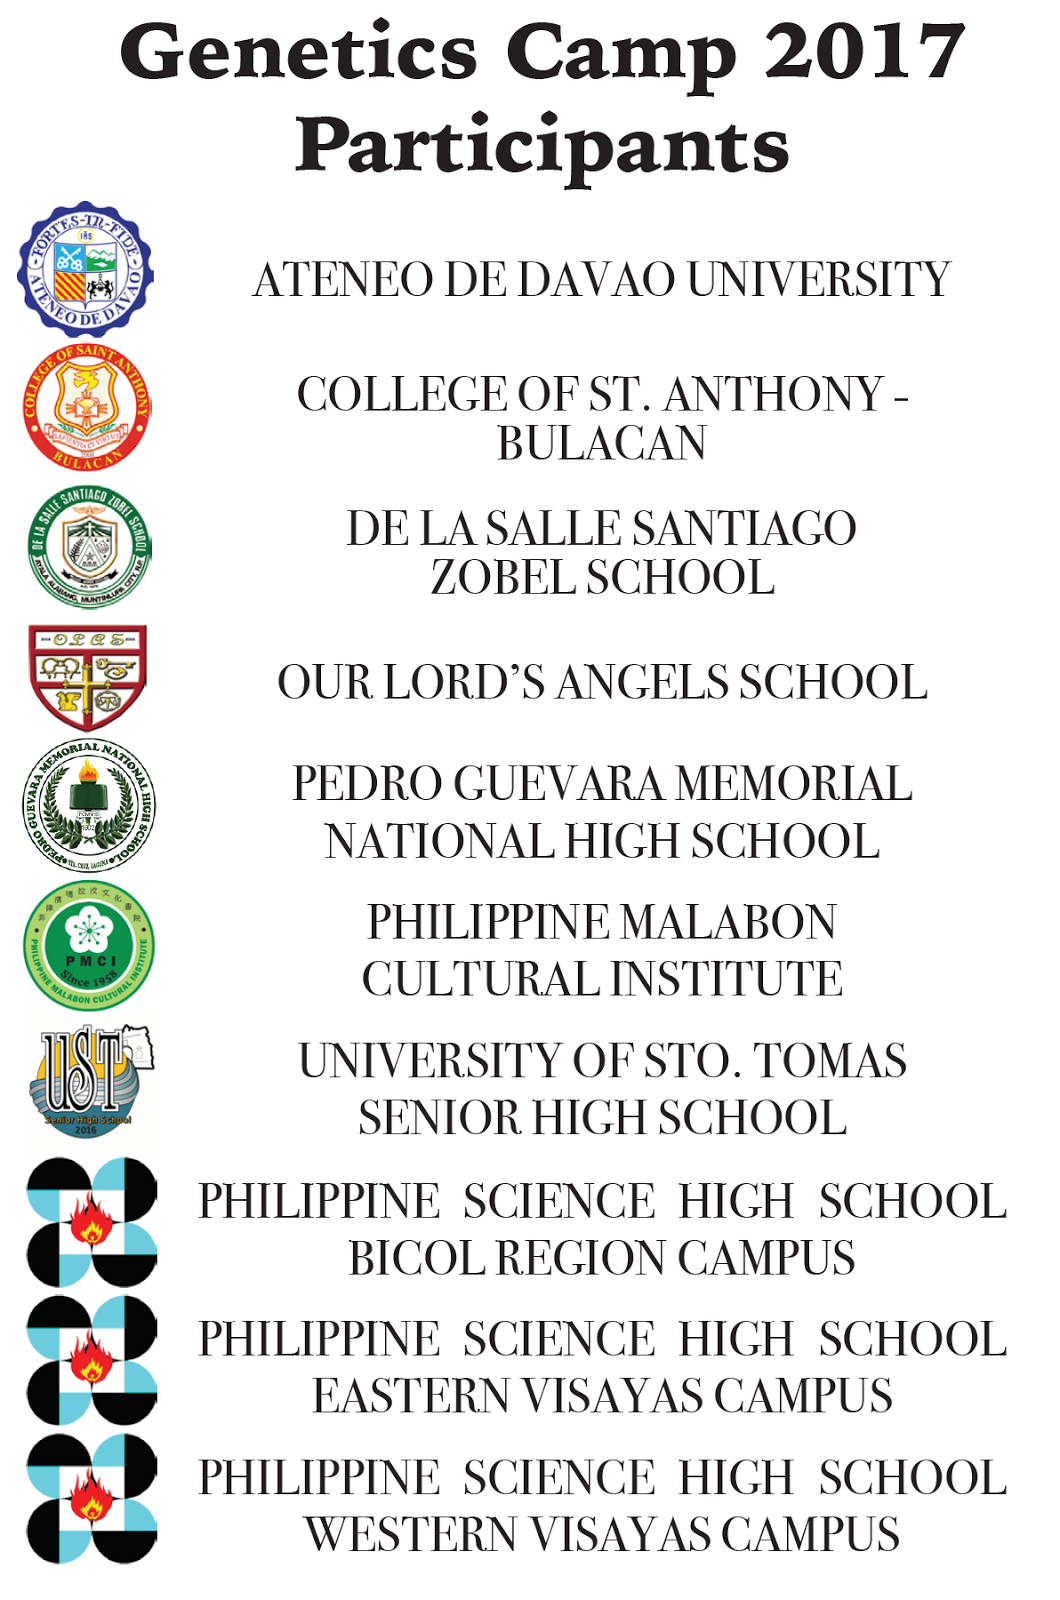 genetics camp marking a new goal for sustainable development philippine science high school western visayas campus bested the ten competing schools copping their 4th consecutive overall championship title since 2014